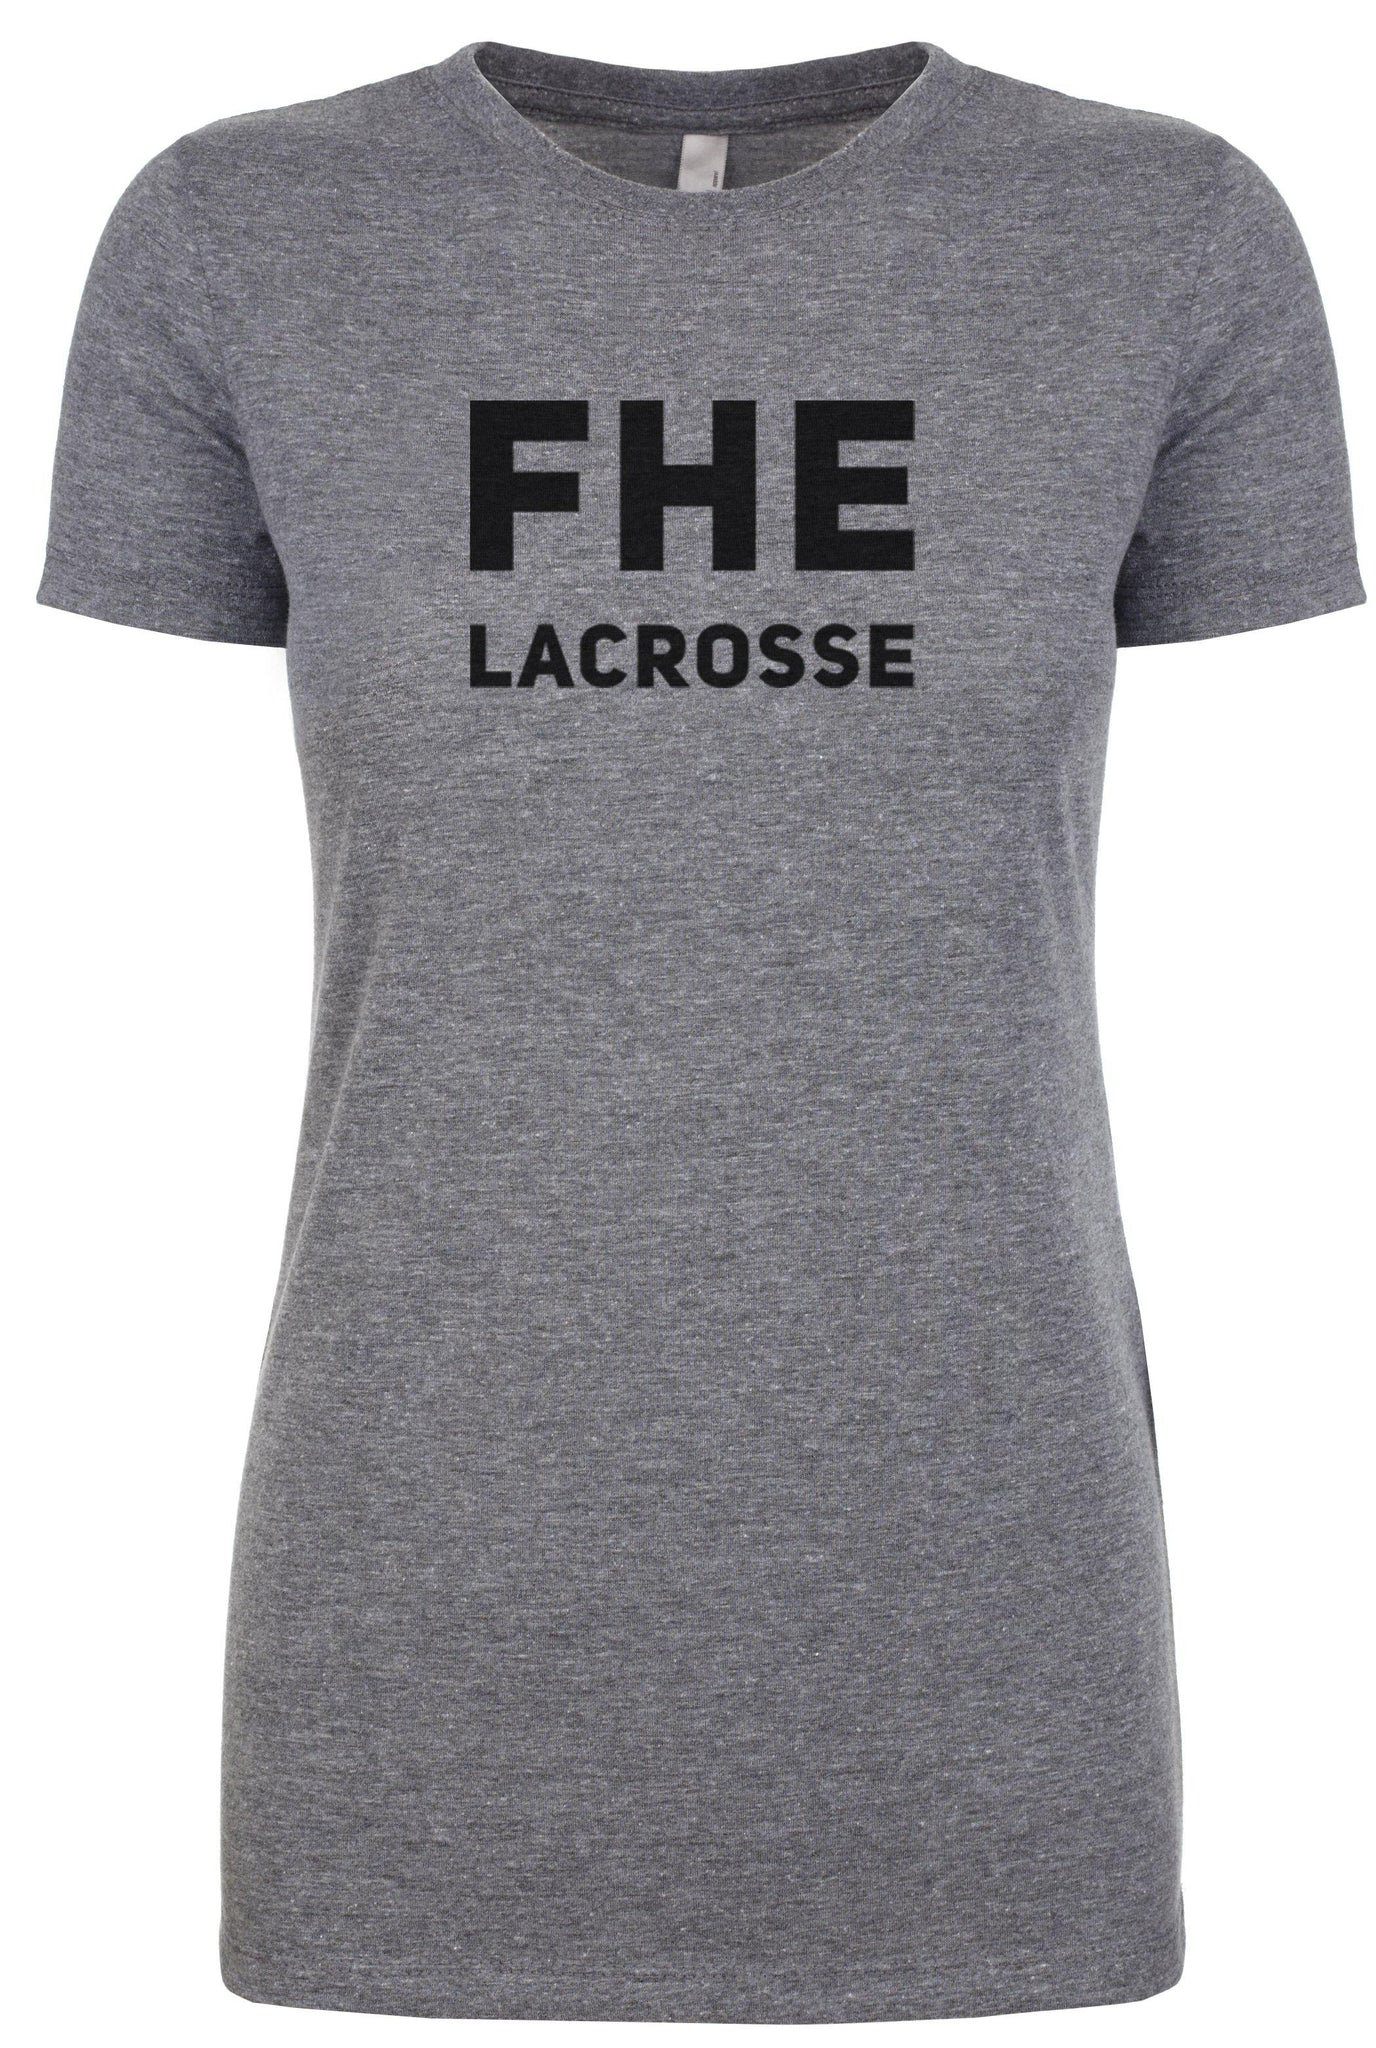 FHE LACROSSE Women's Fitted Tri-Blend T-Shirt